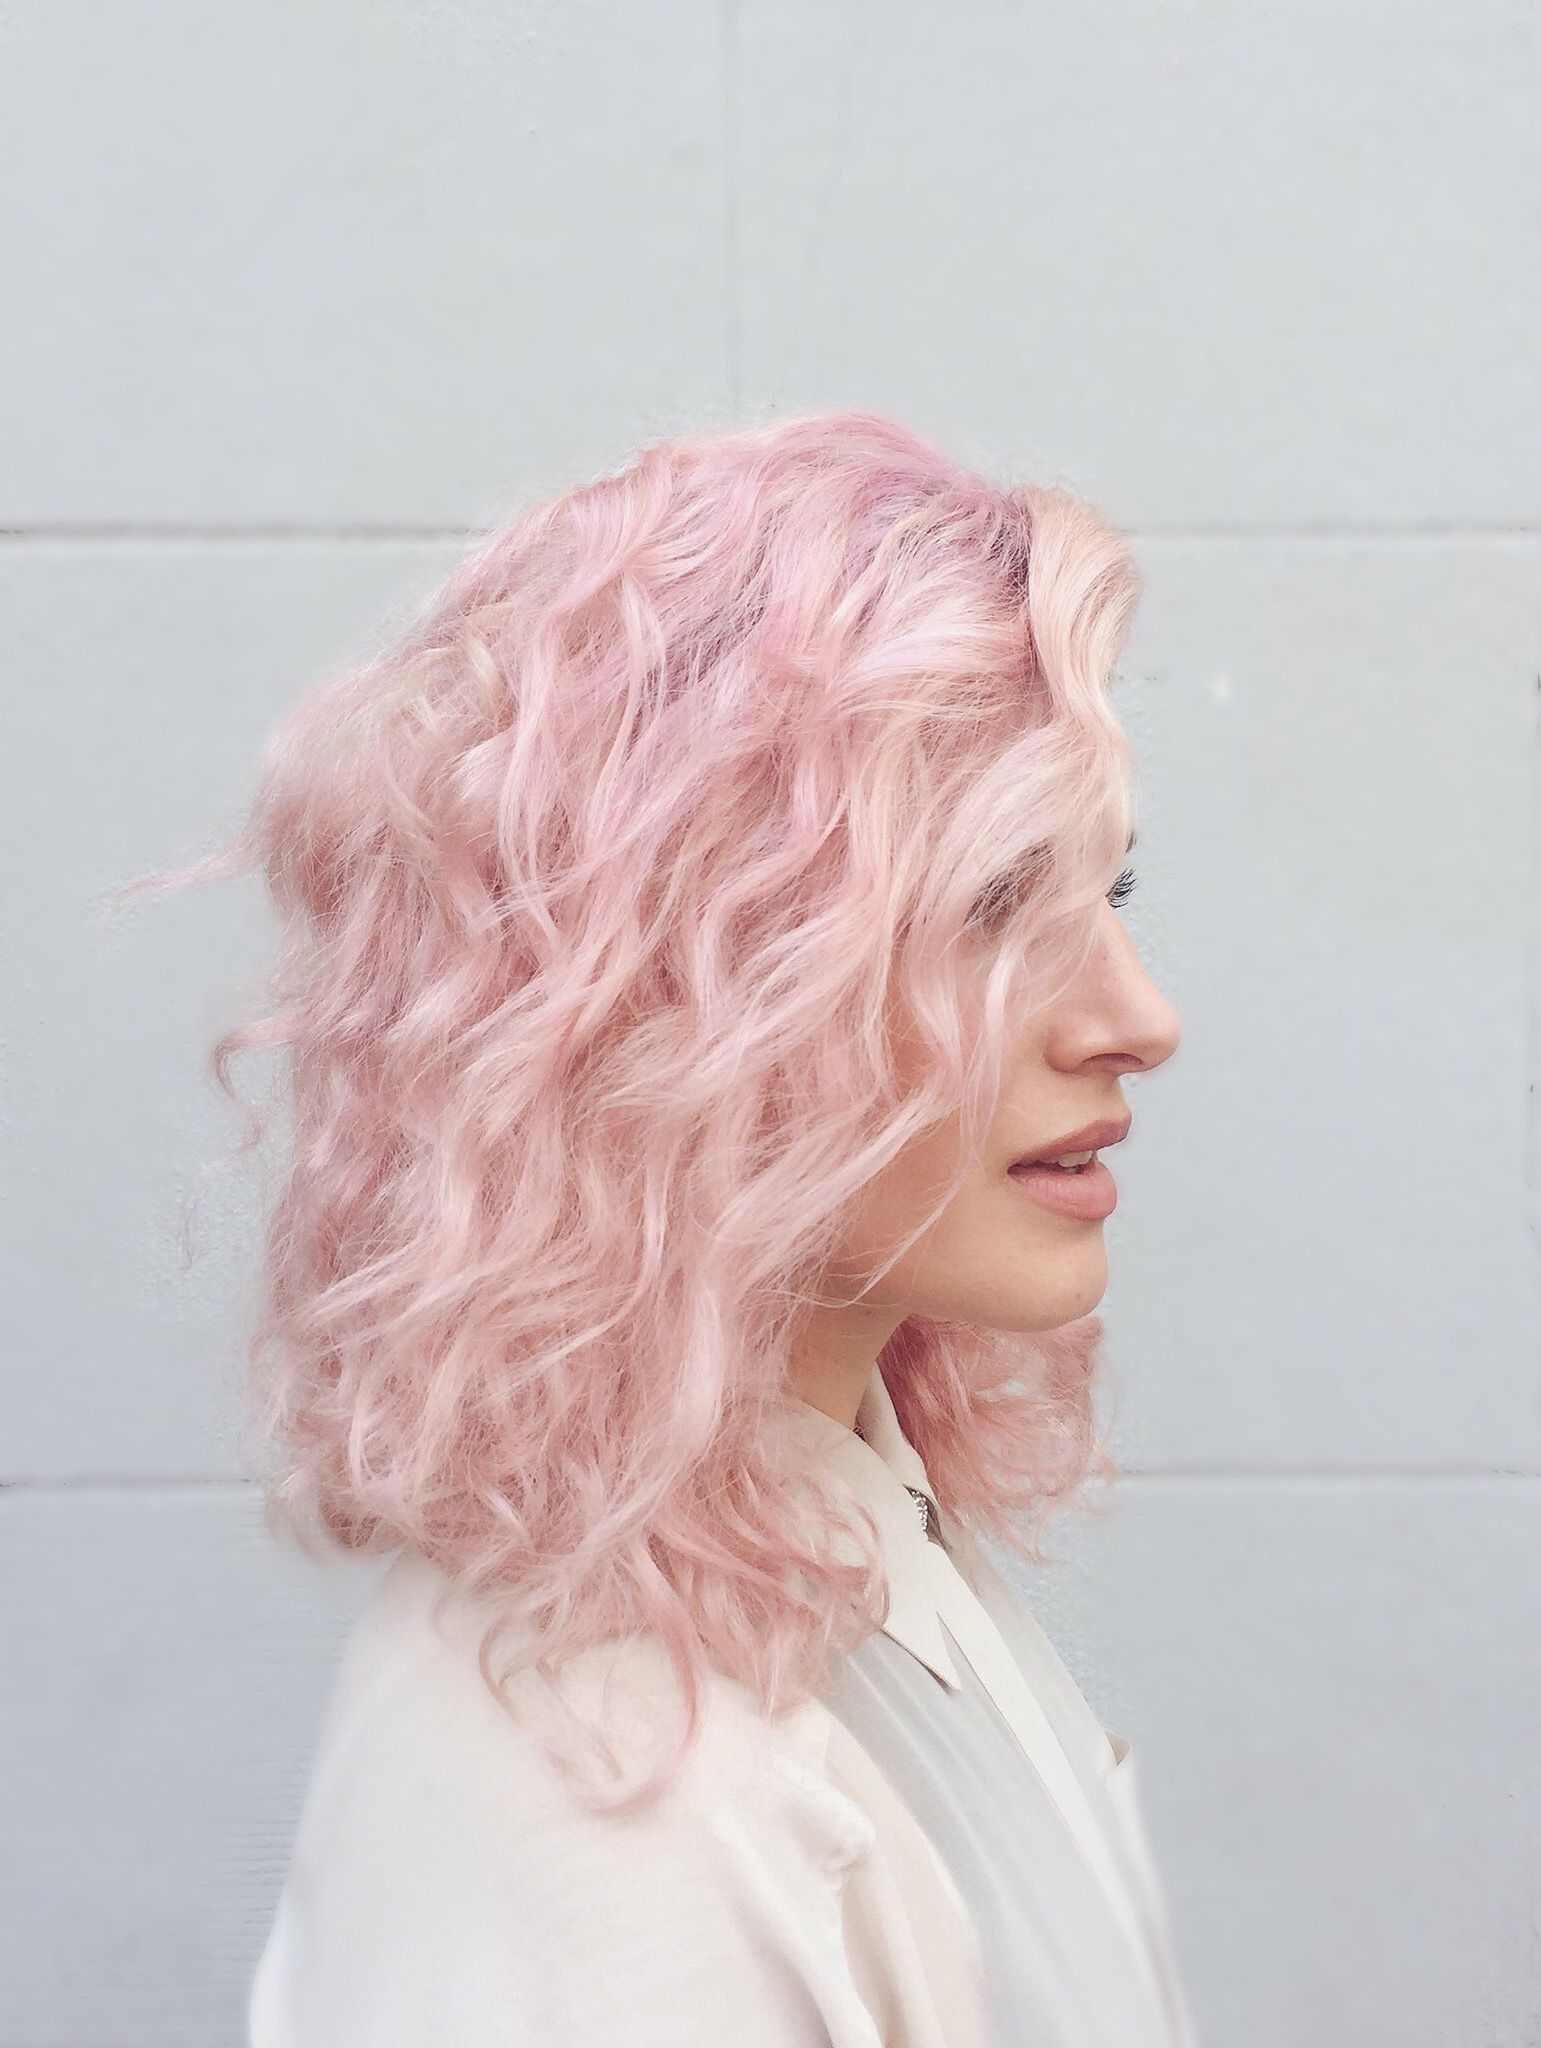 Pin by bryana prettyman on hair pinterest pink hair hair and